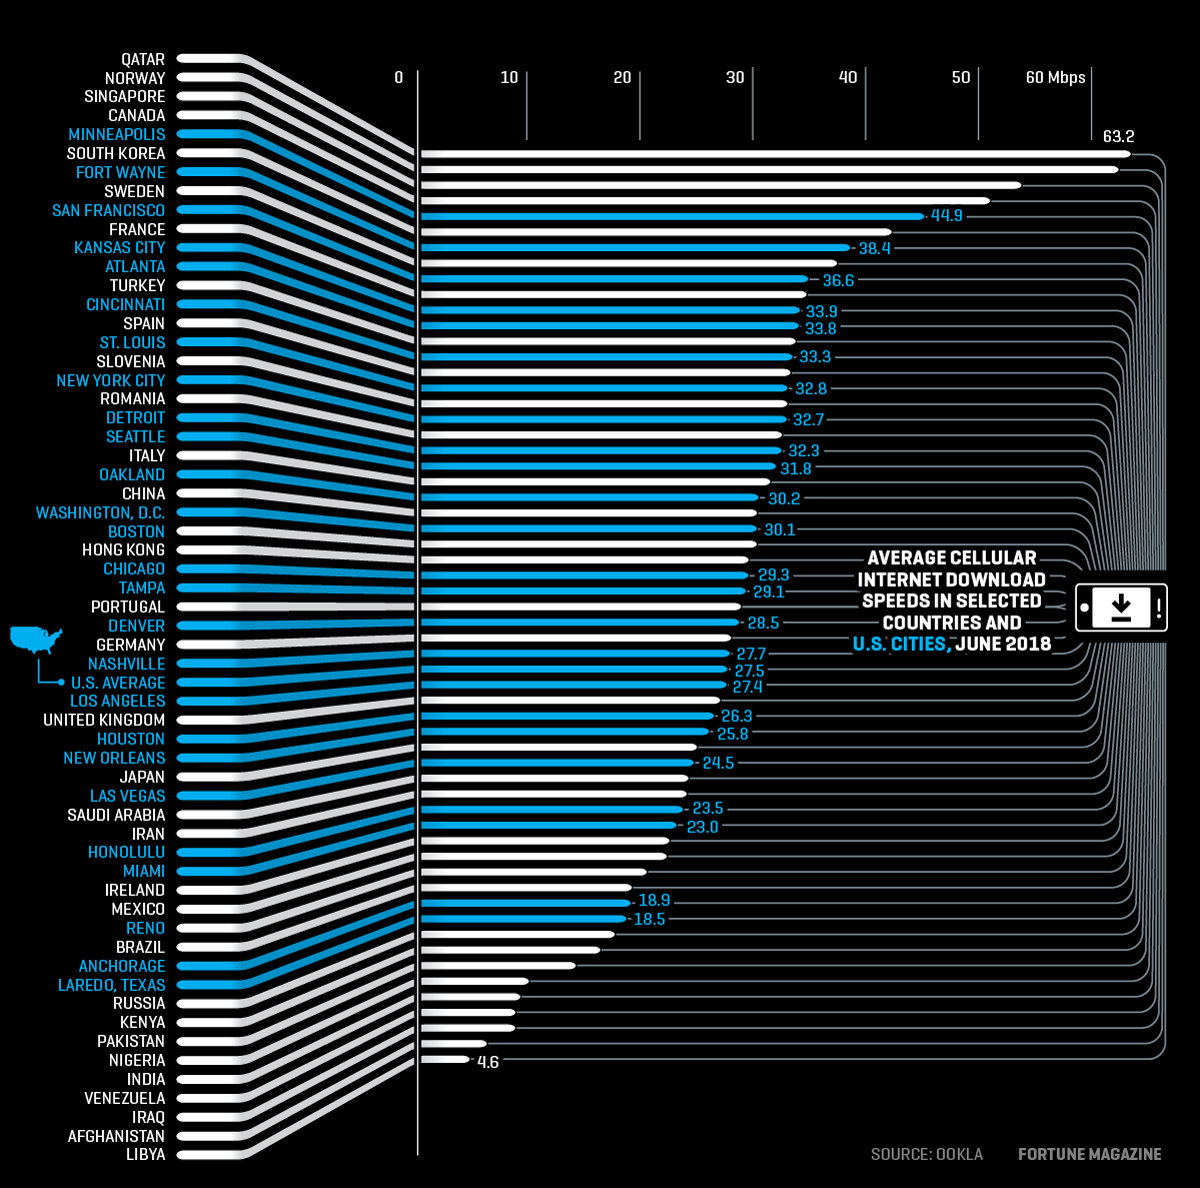 Chart shows speed of mobile internet for U.S. cities and selected countries